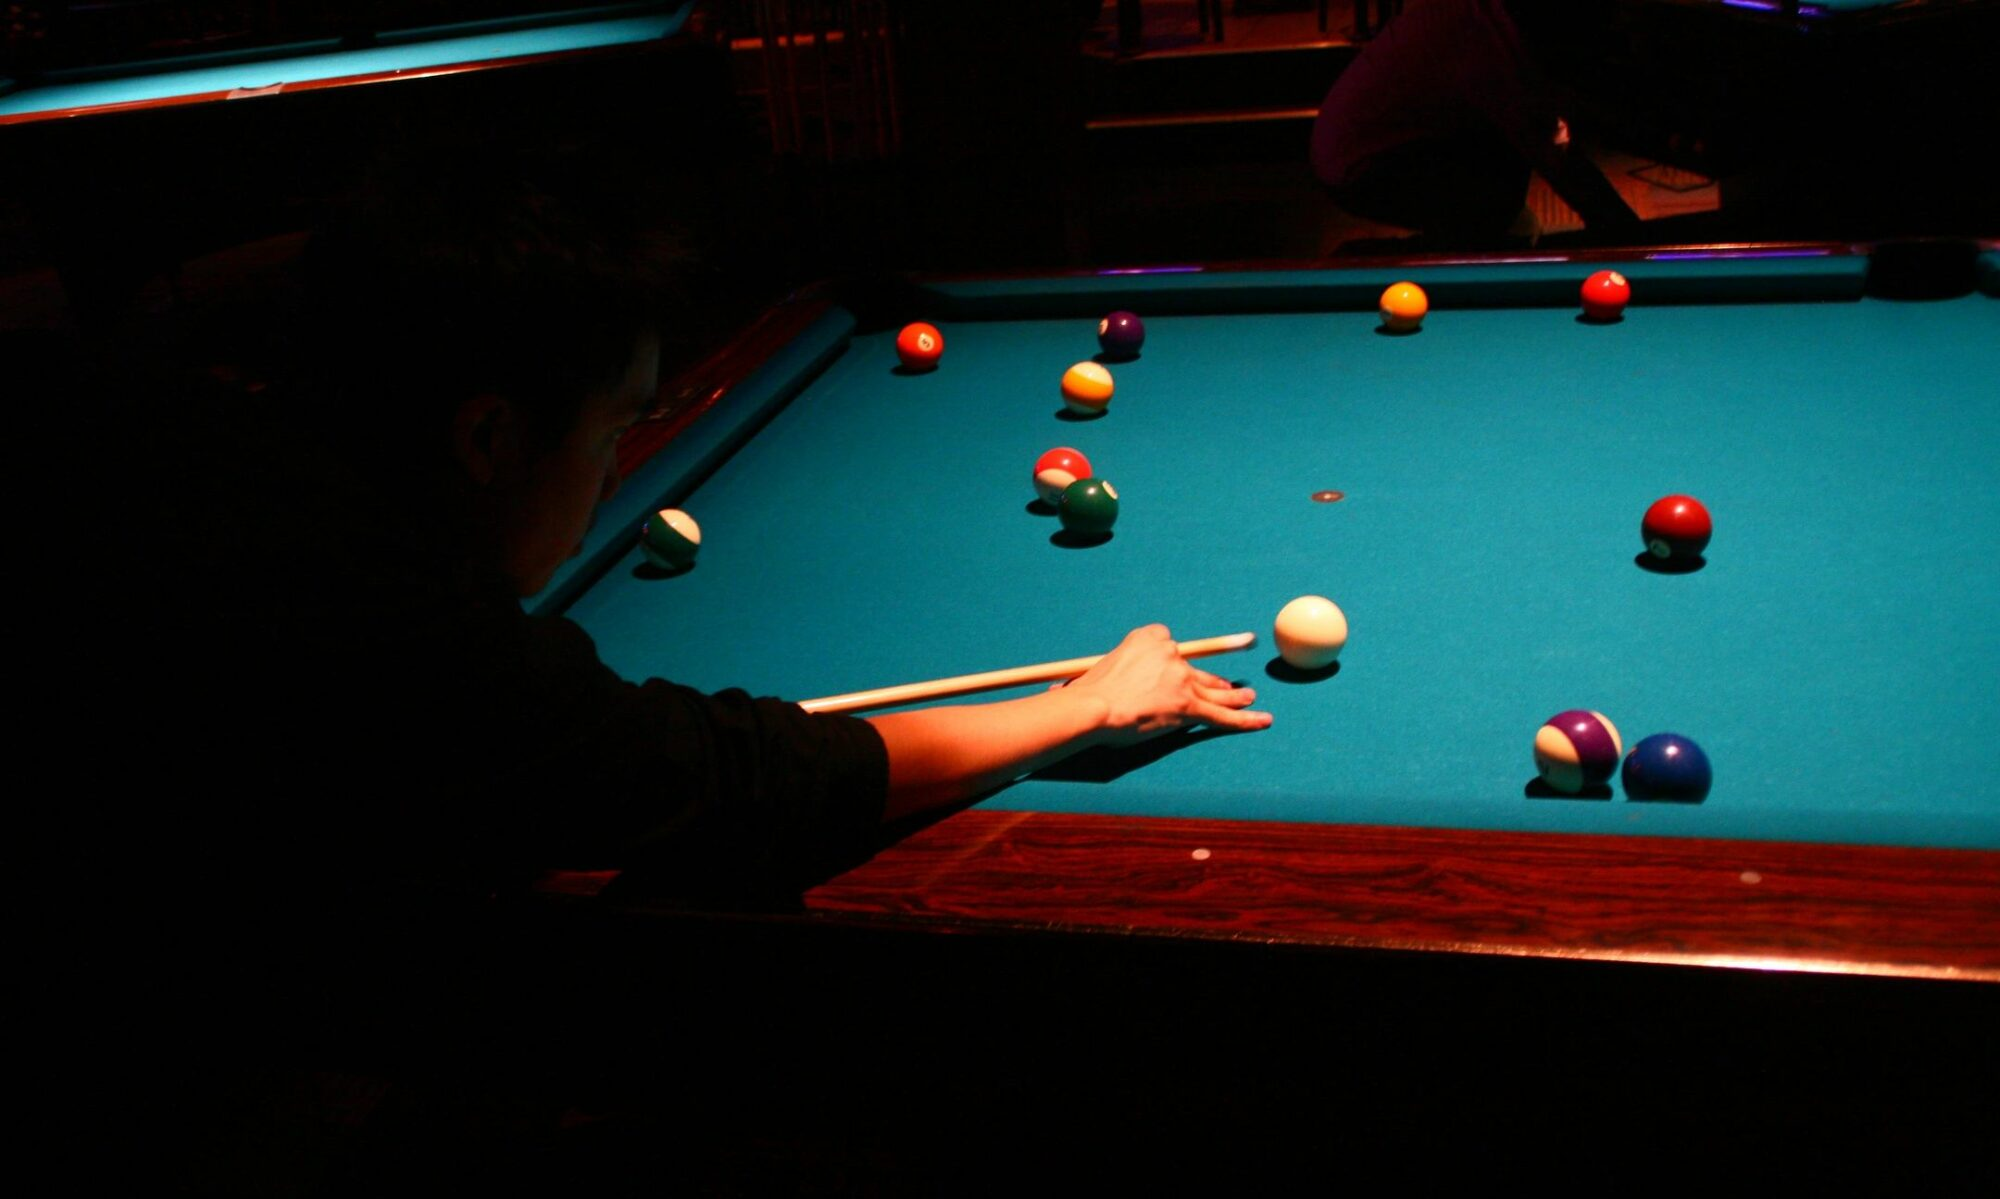 Canadian Billiards and Snooker Association